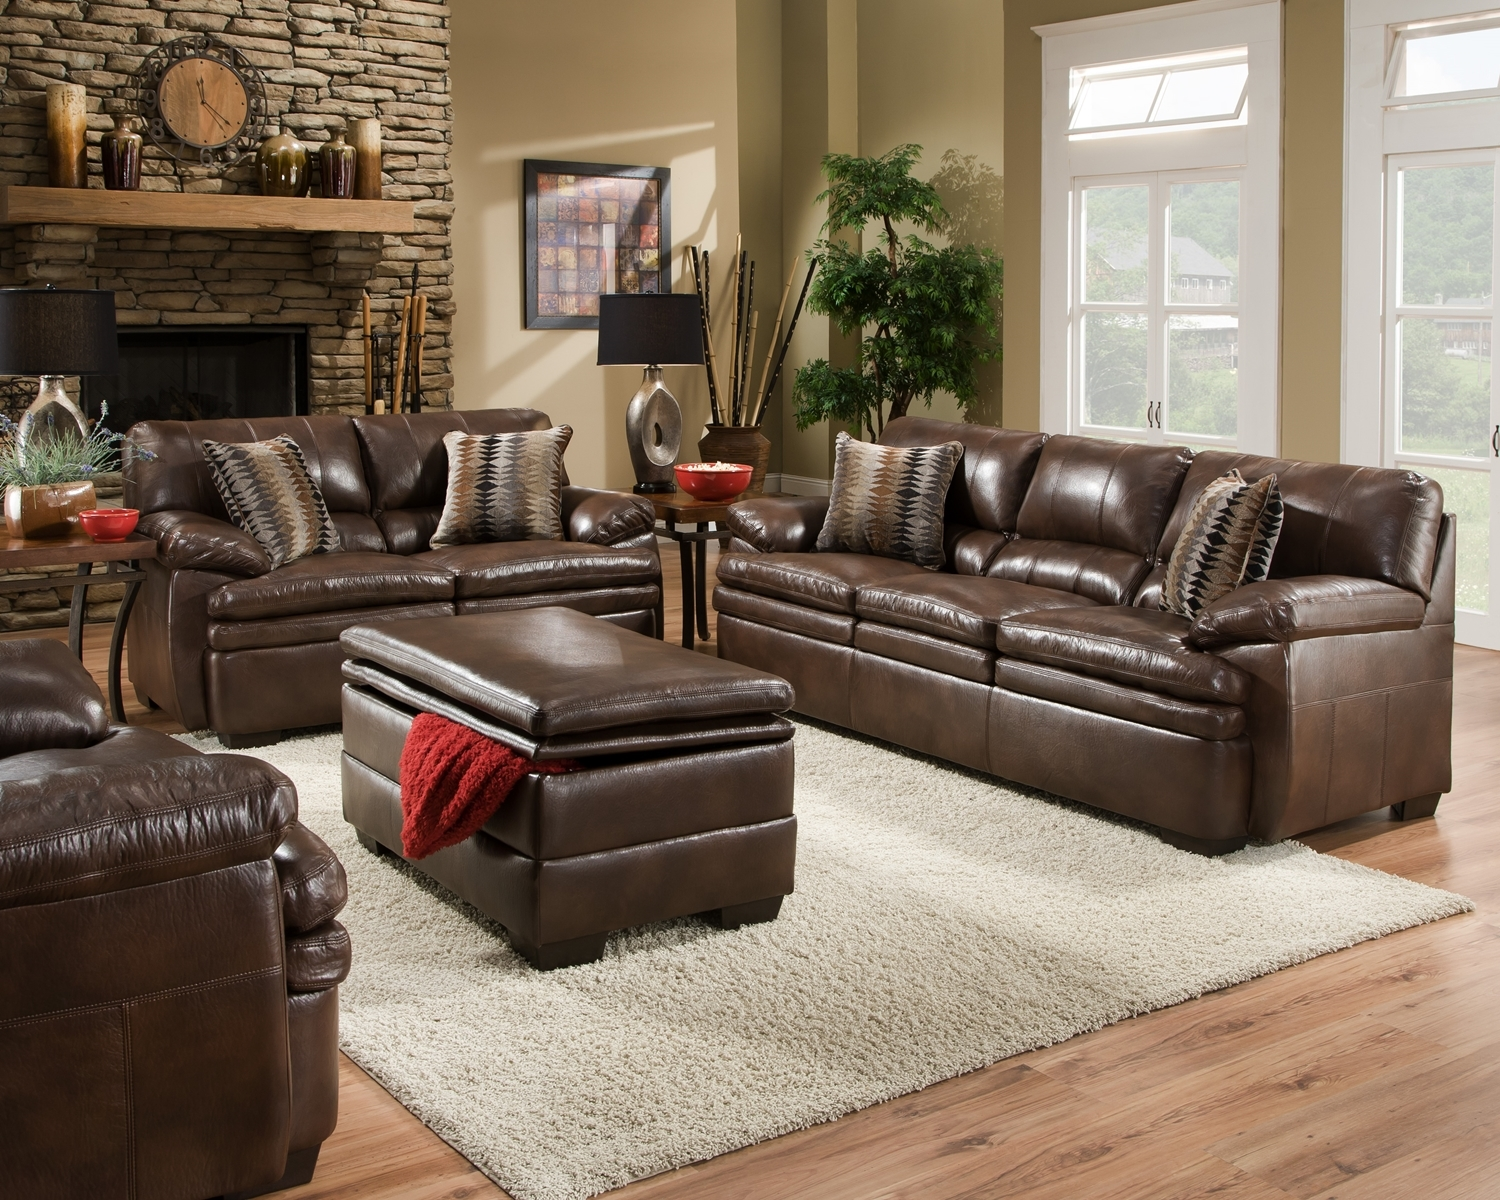 brown bonded leather sofa set casual living room furniture w accent pillows ebay